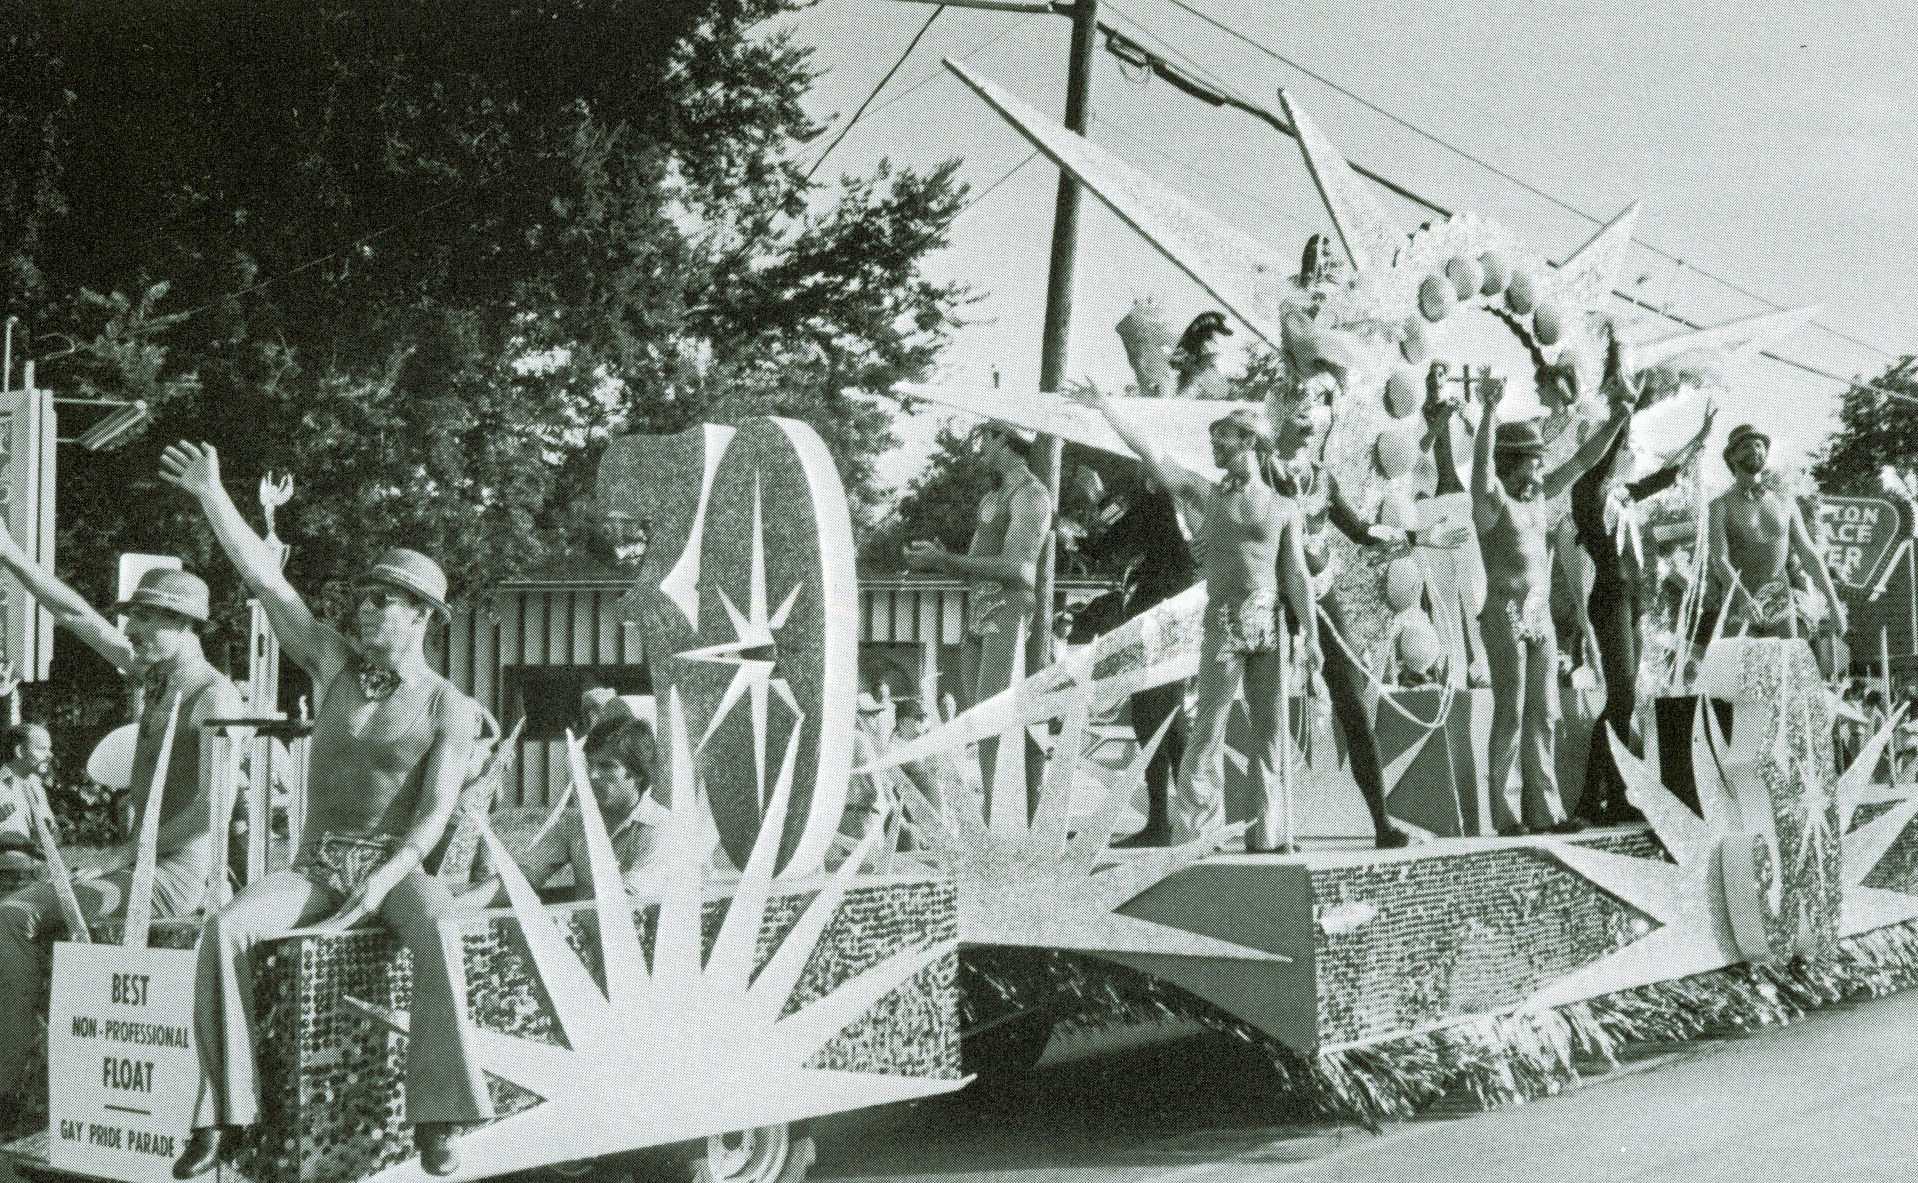 Dianas 4 - 1980's Photos 27 - 1983 Float.jpg